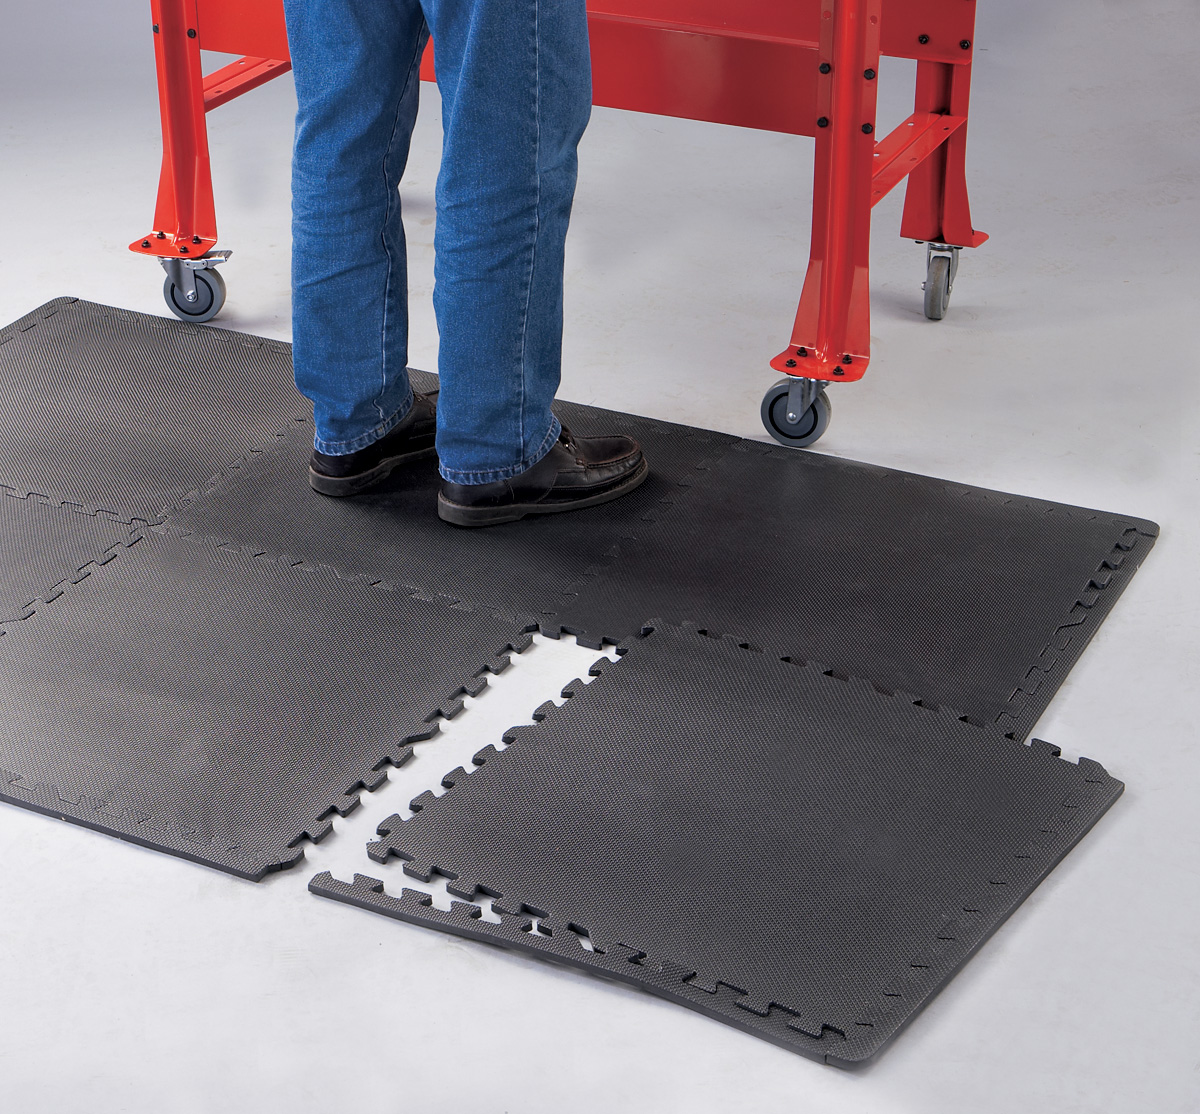 24 sq. ft. of Anti-Fatigue Work Mats